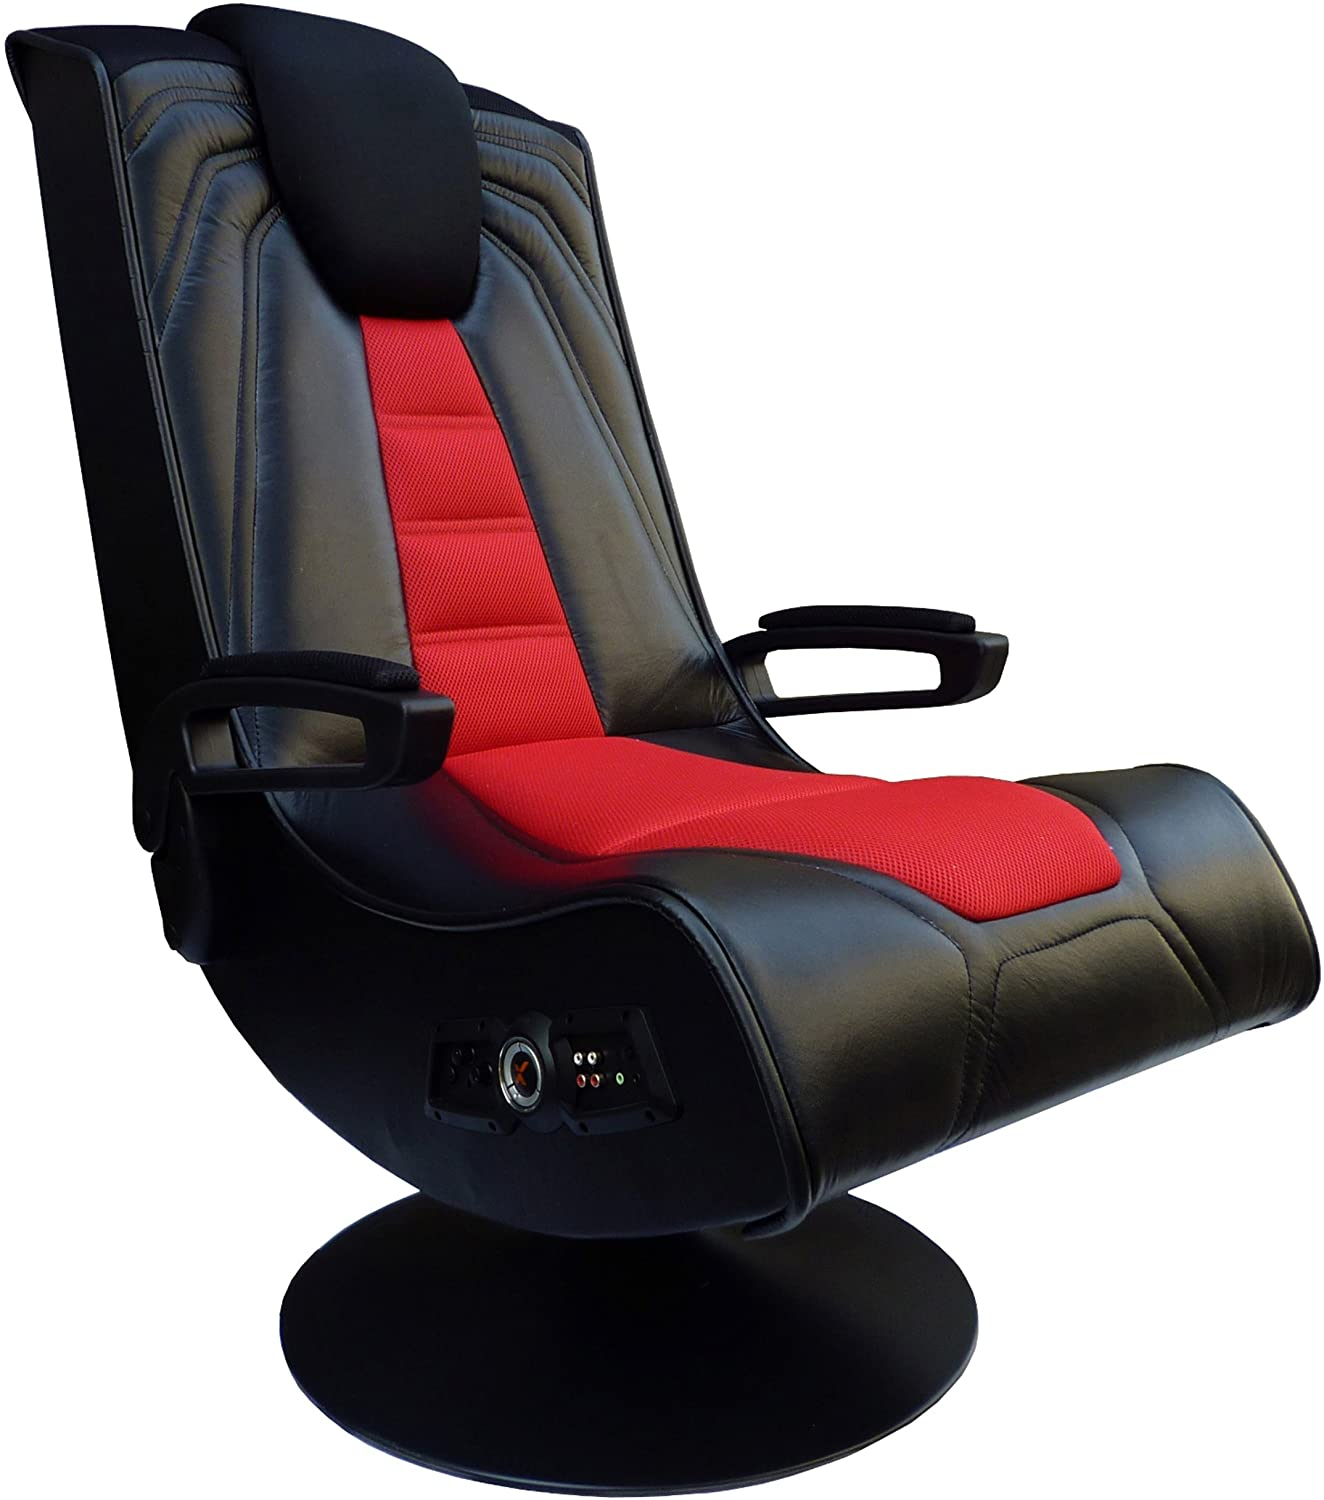 X Rocker Pedestal Extreme III 2.1 Sound Wireless Video Foldable Gaming Chair w/Pedestal Base and 2 Speaker High Tech Audio System - Subwoofer, Padded Armrests - Black and Red, 5149201